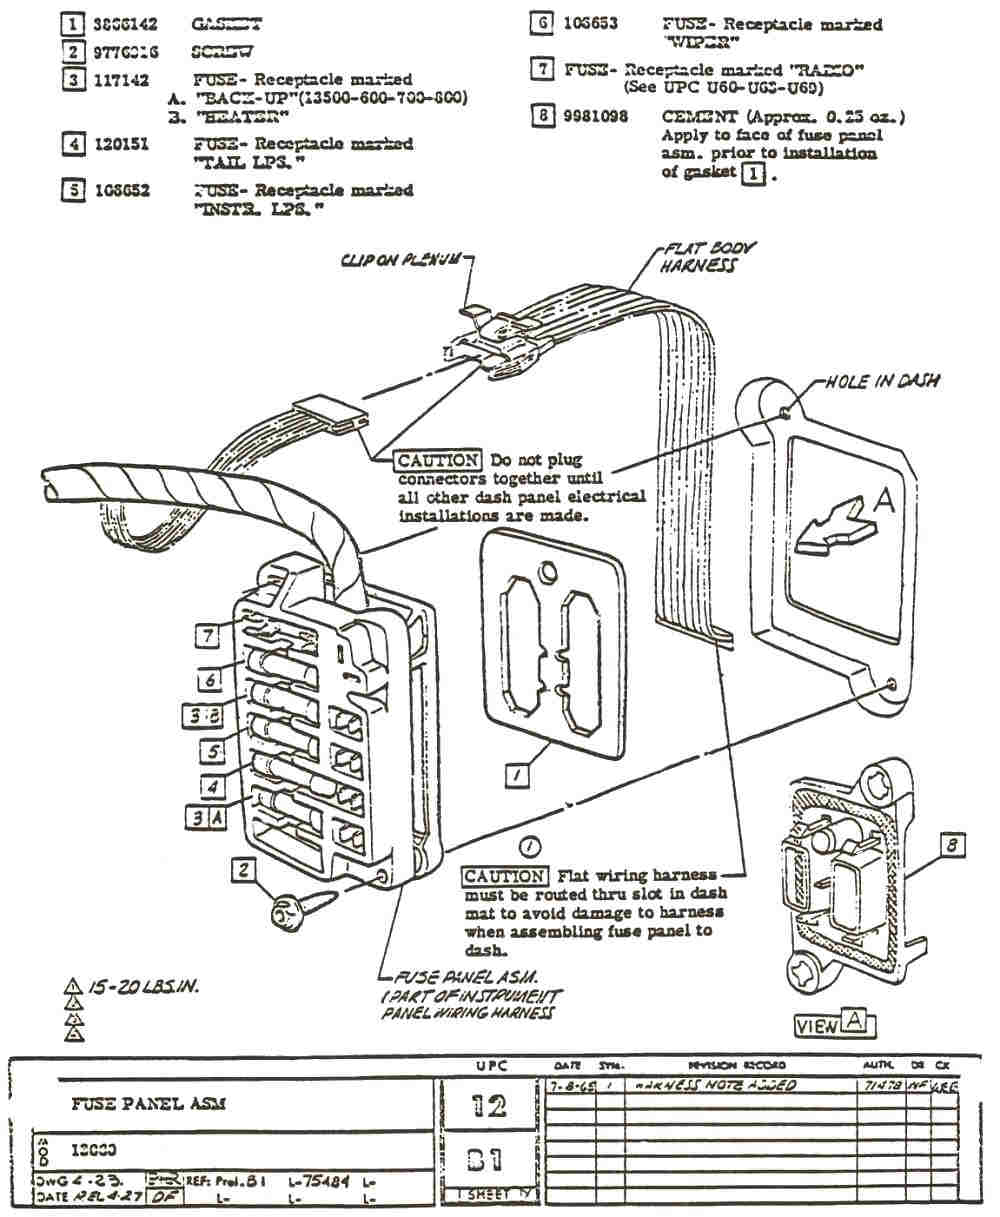 hight resolution of 67 camaro fuse box diagram 1969 camaro wiring schematic 67 camaro fuse box diagram